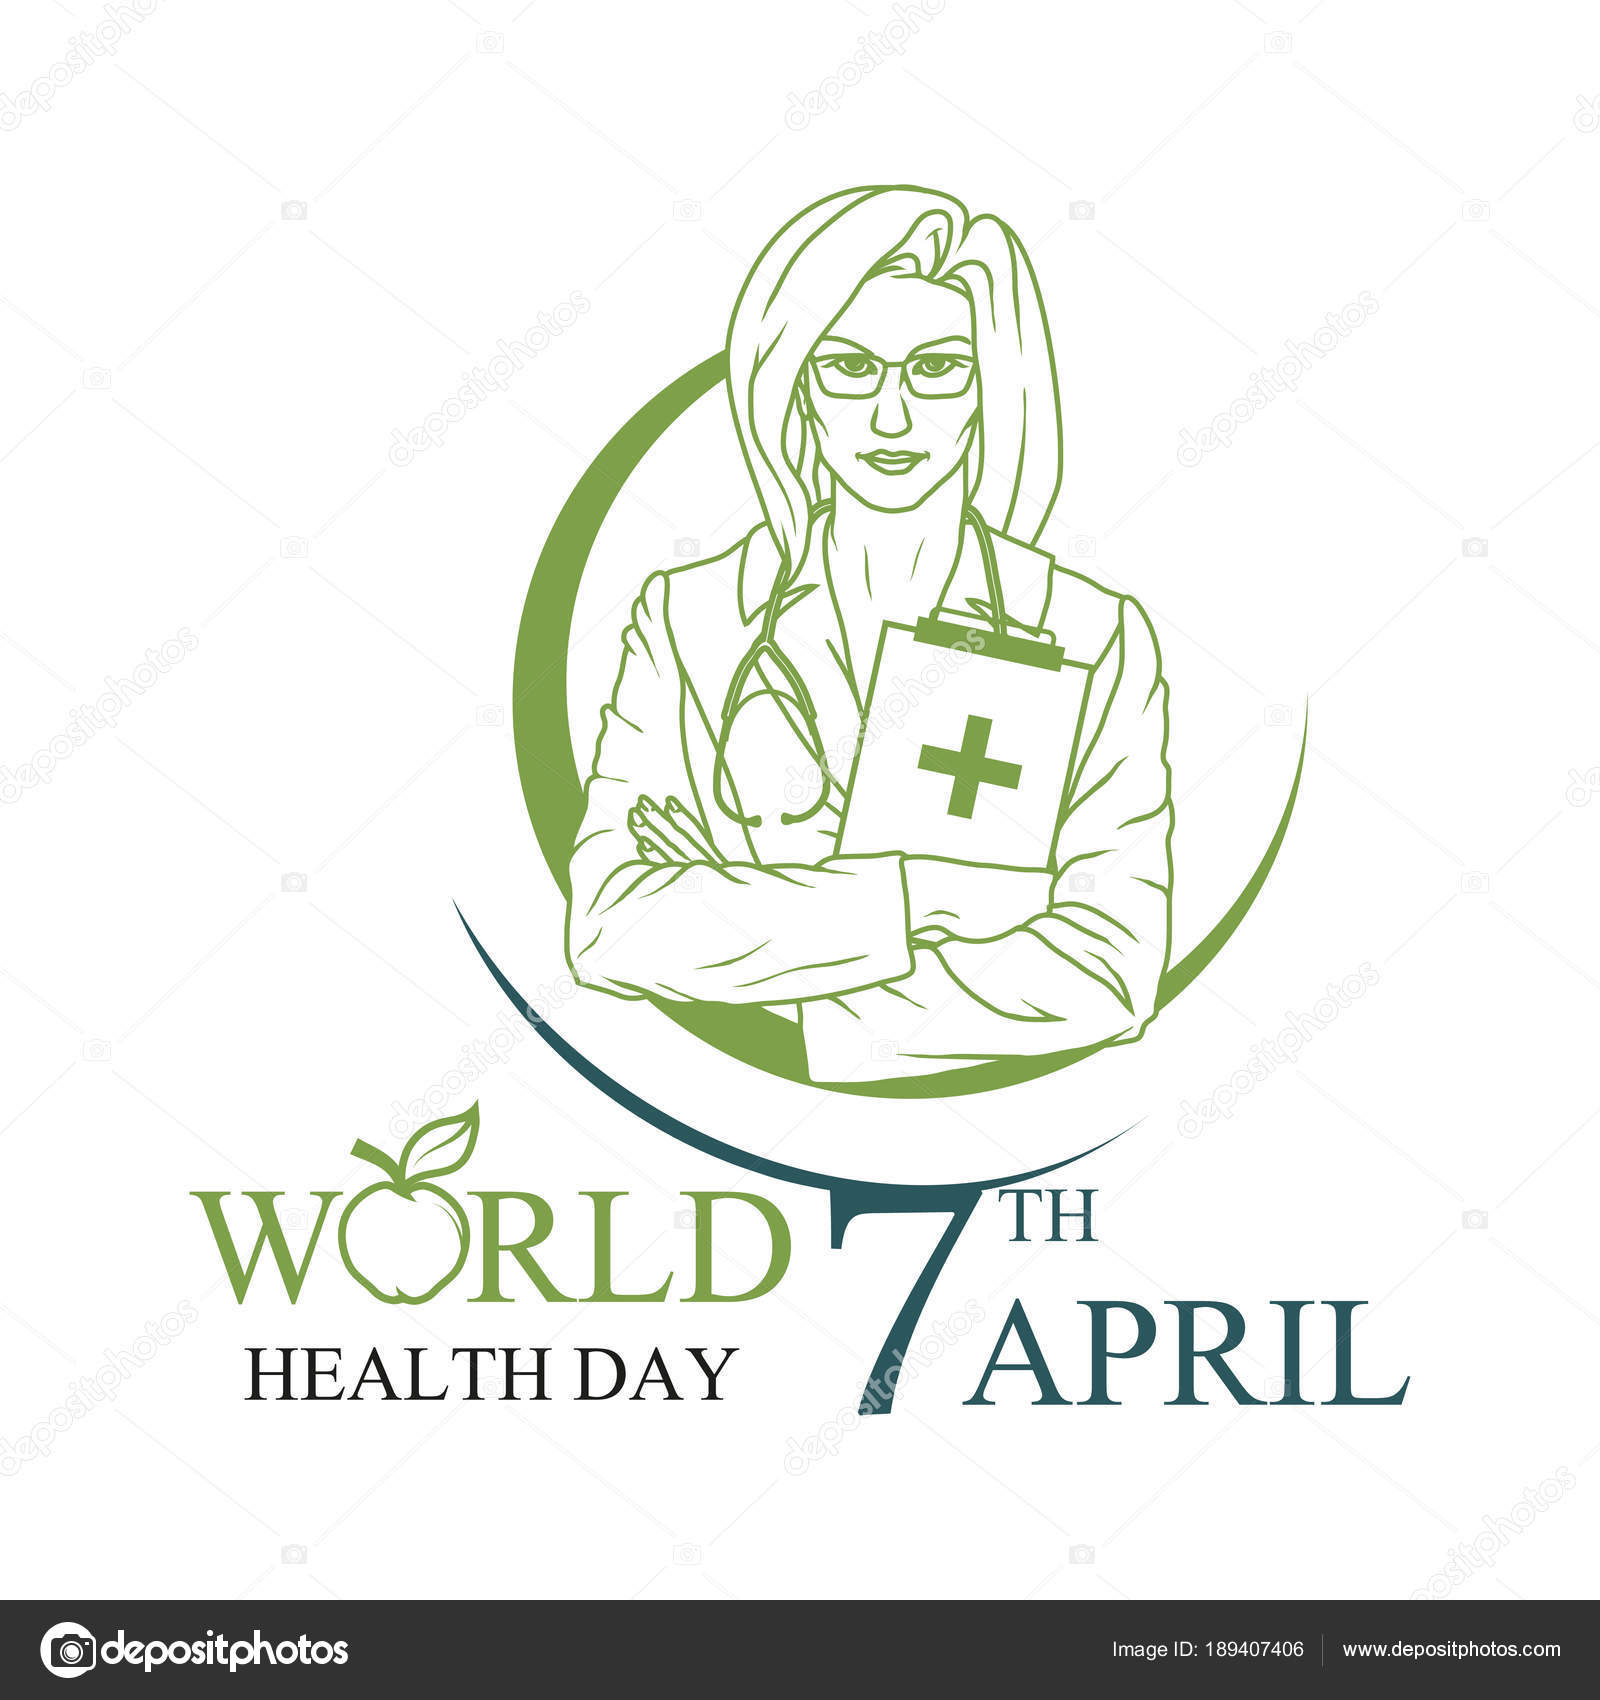 5a8a5aae164a World Health Day April Healthy Lifestyle Concept World Health Day ...